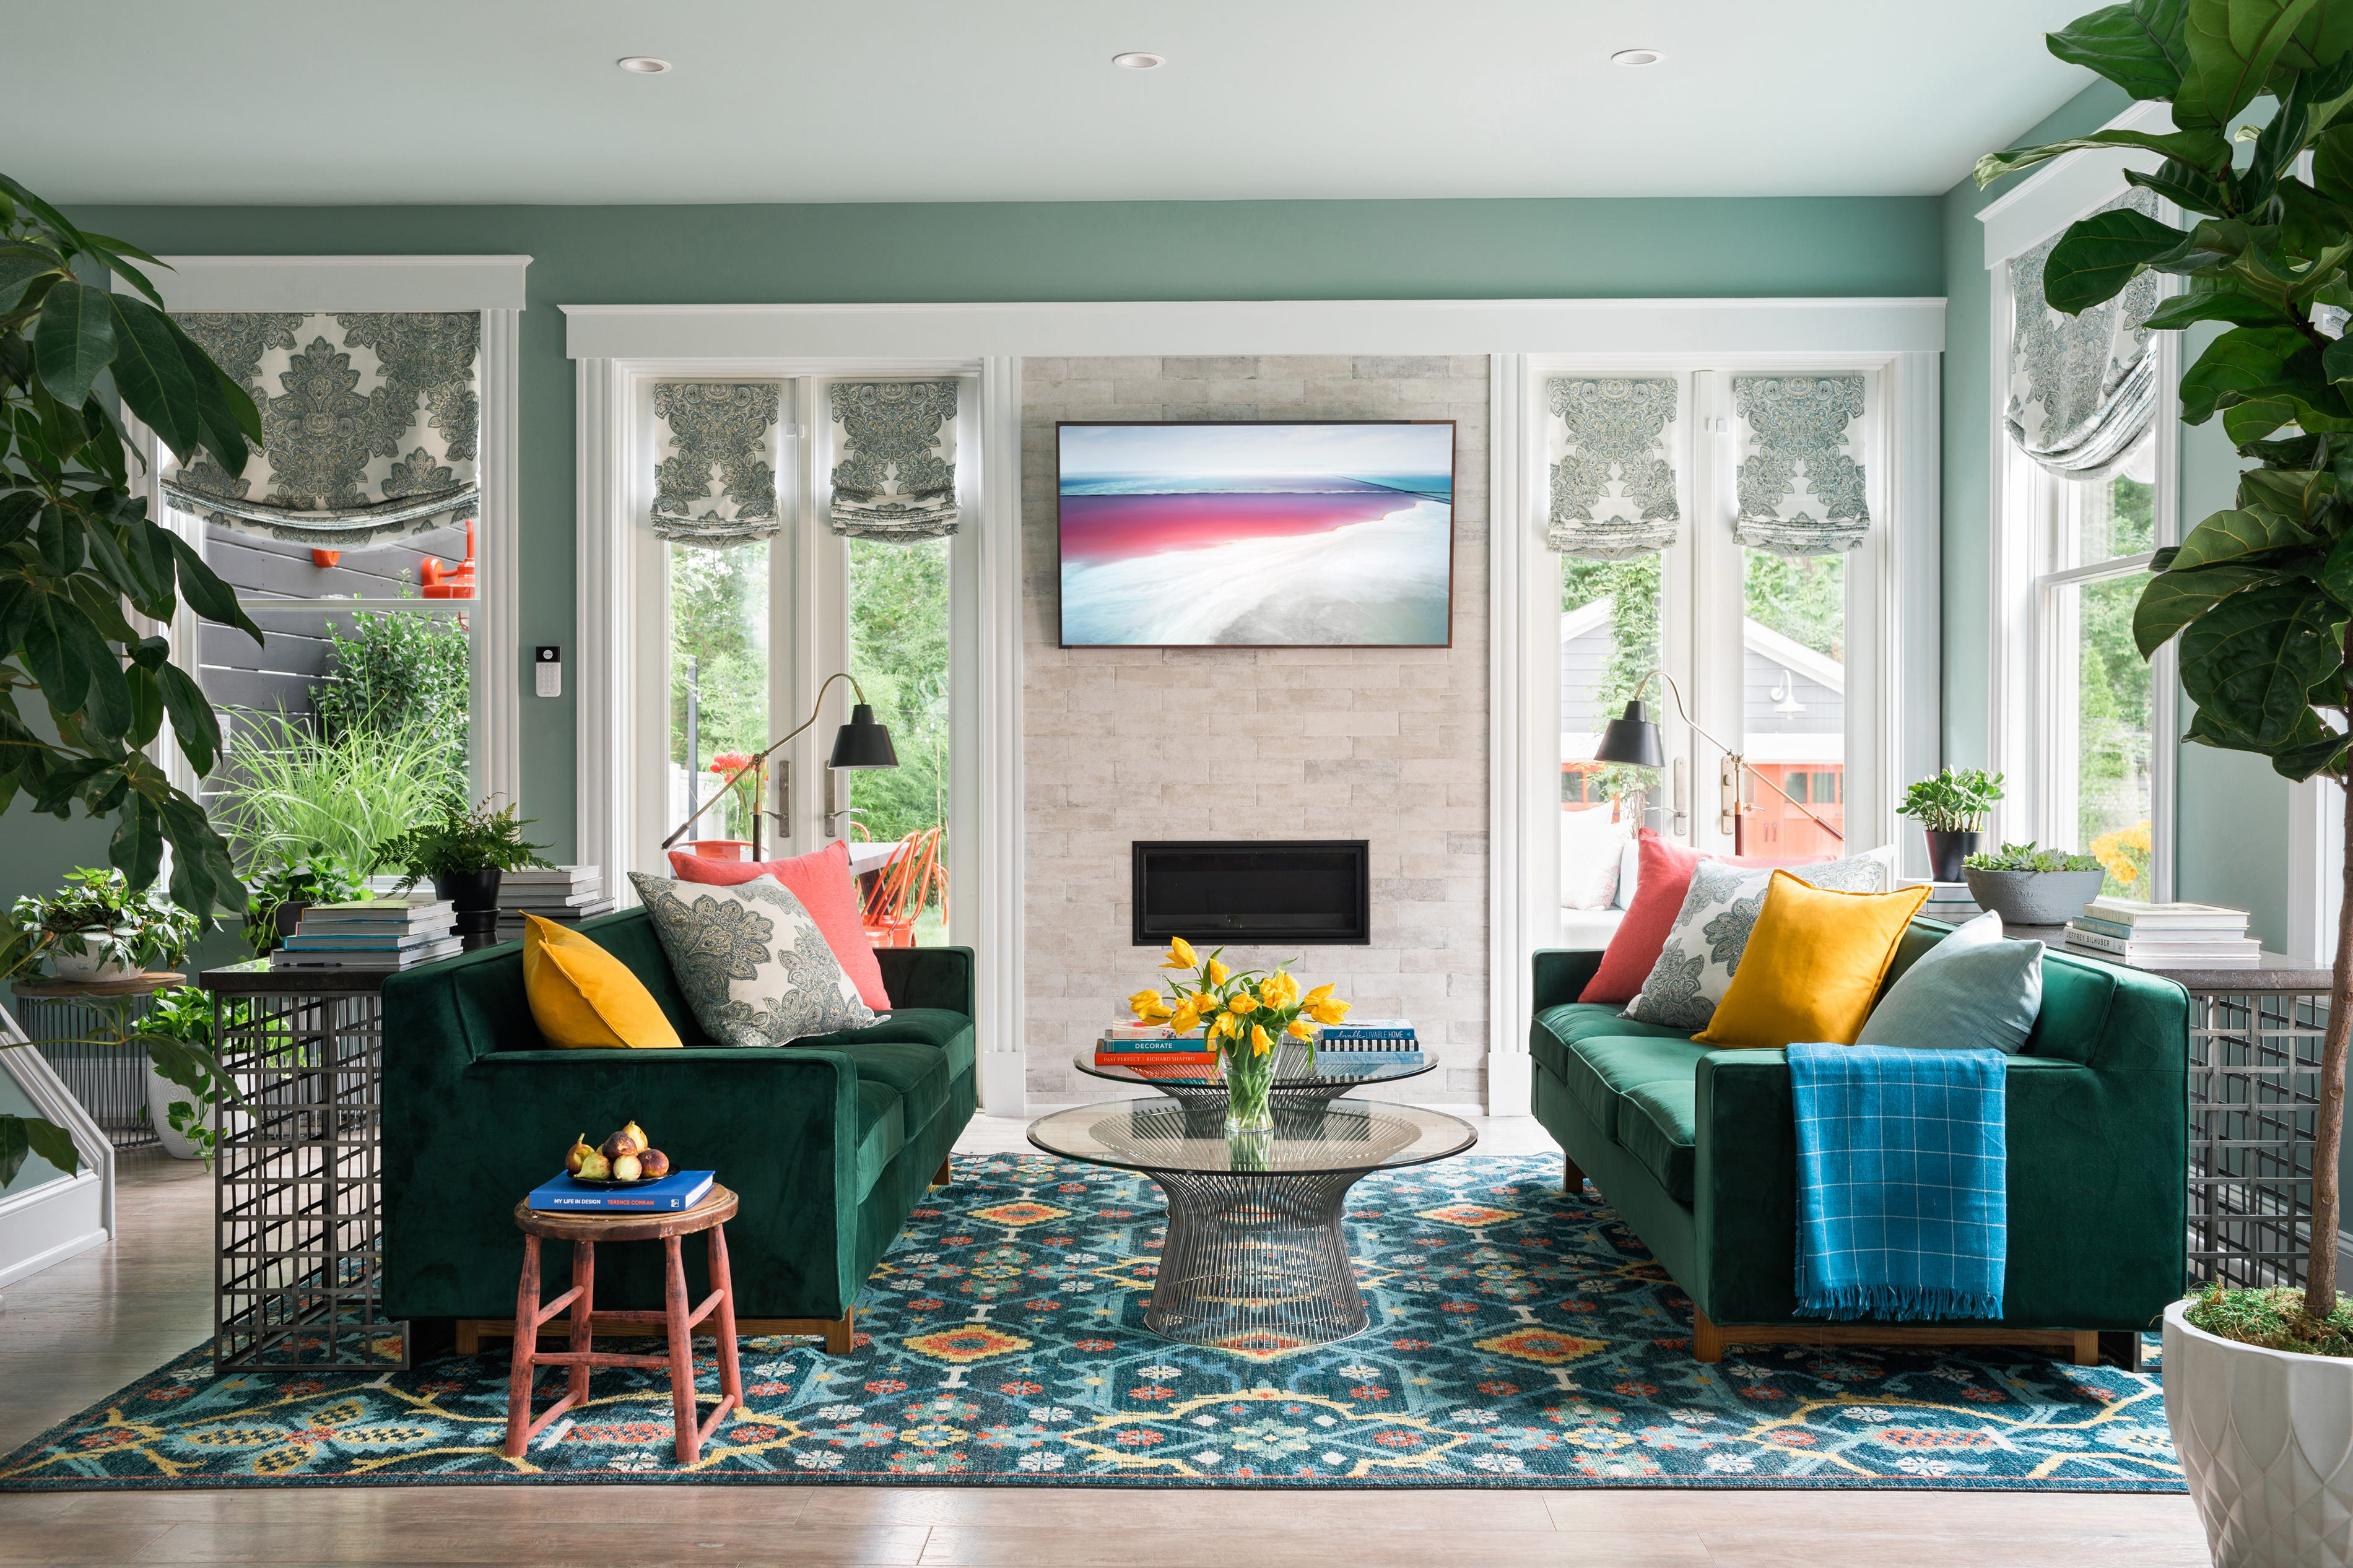 HGTV Urban Oasis 2018 TV Special Featuring Oakley Home Airs Wednesday,  Sweepstakes Underway